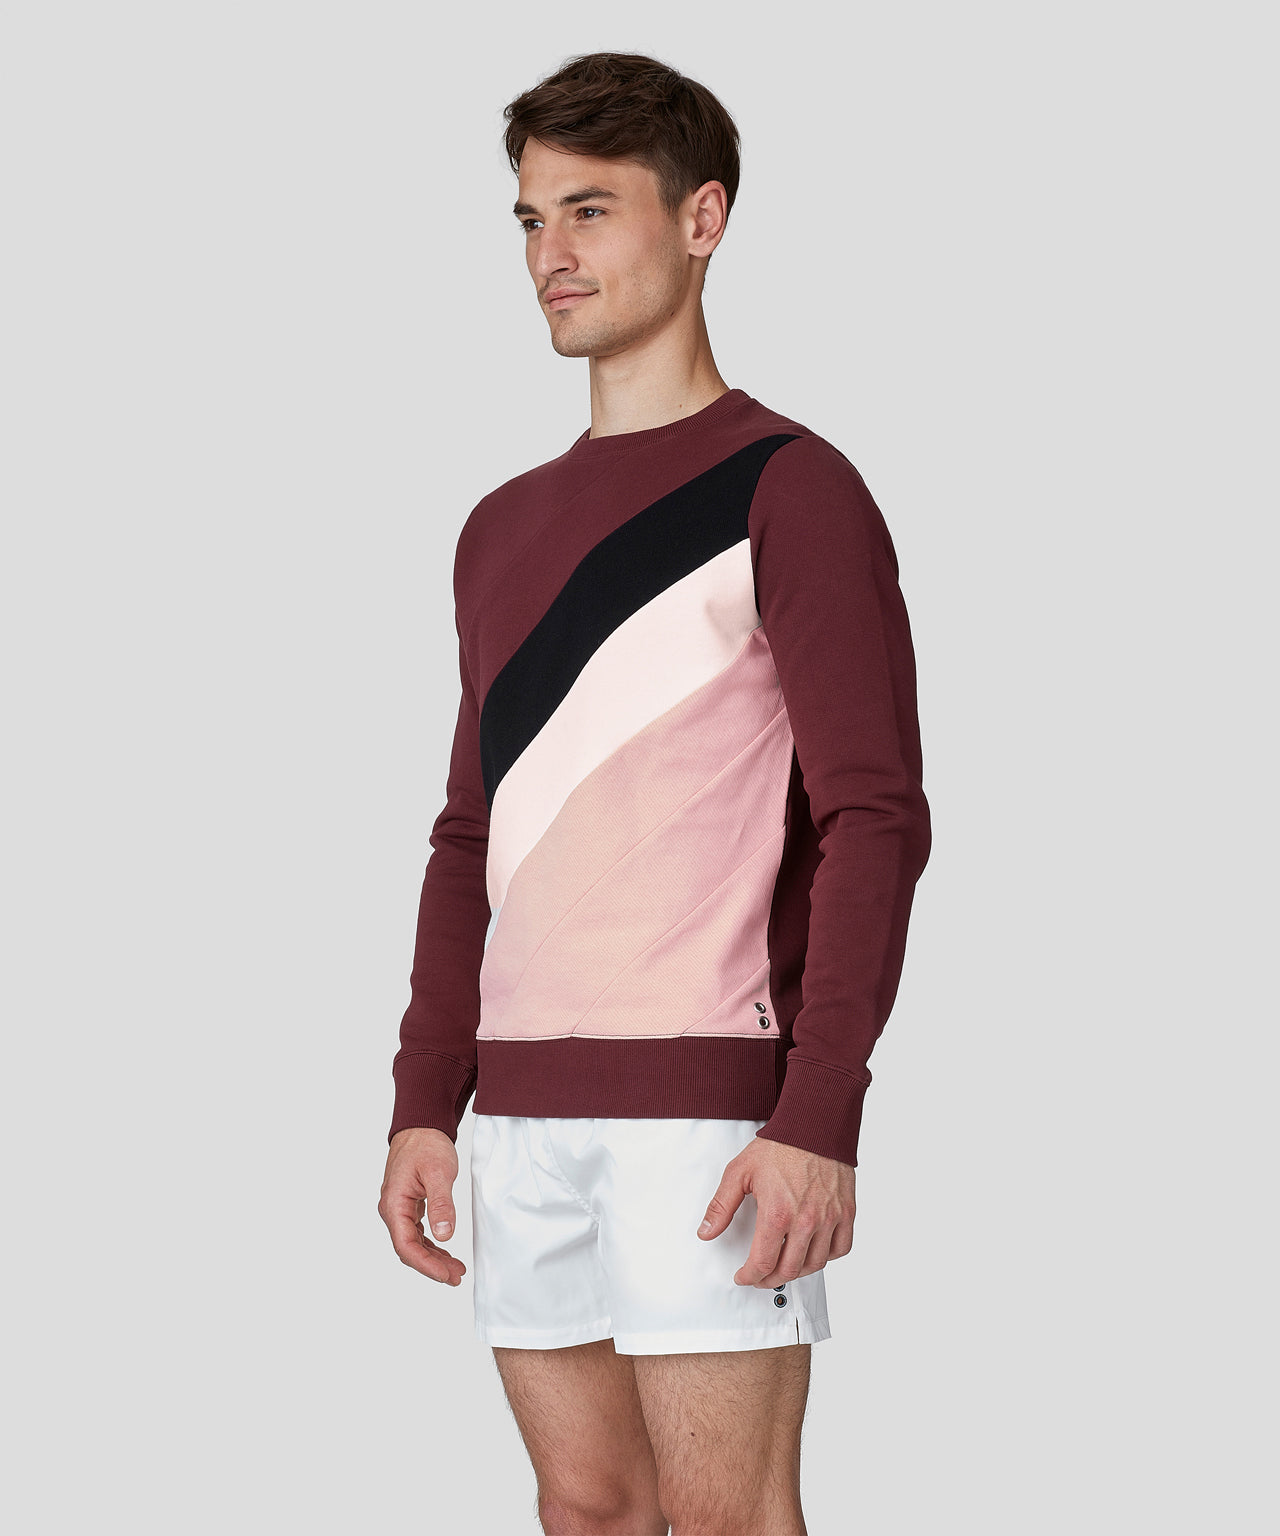 Sweatshirt Diagonal Lines - burgundy red